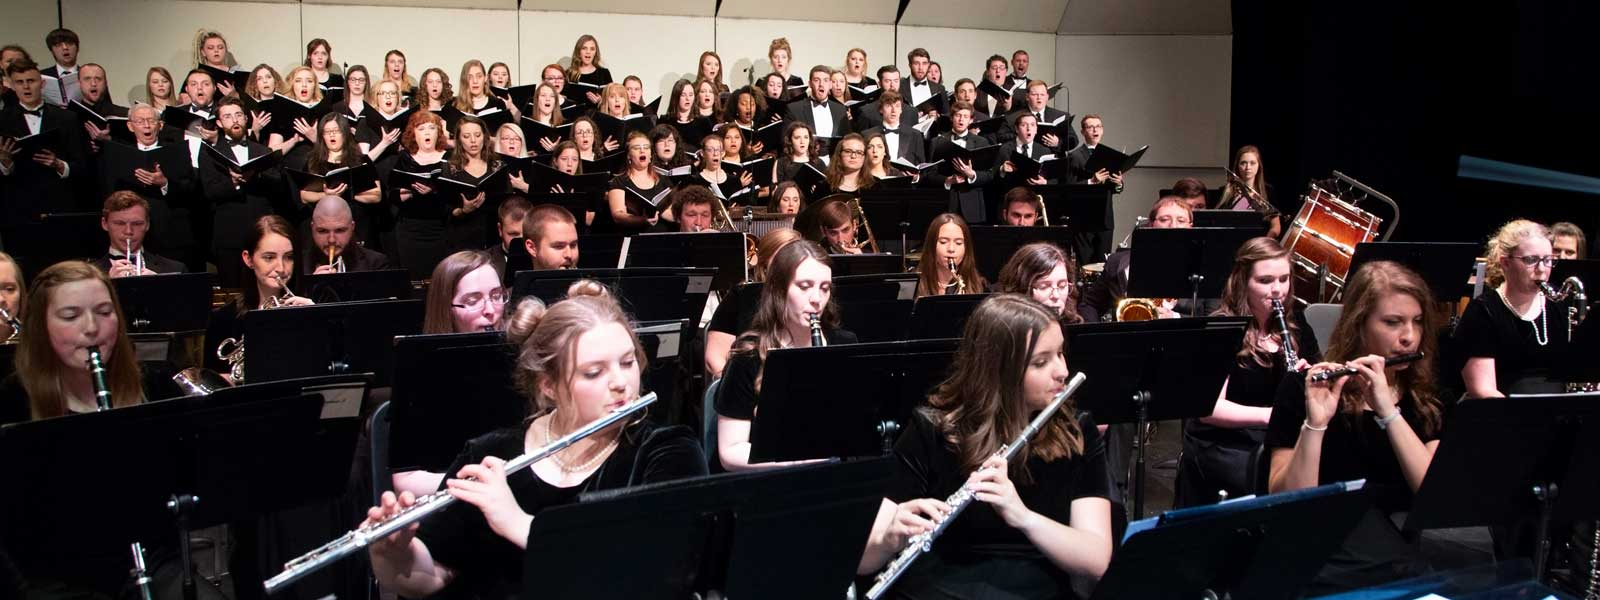 Choral and instrumental ensembles perform together